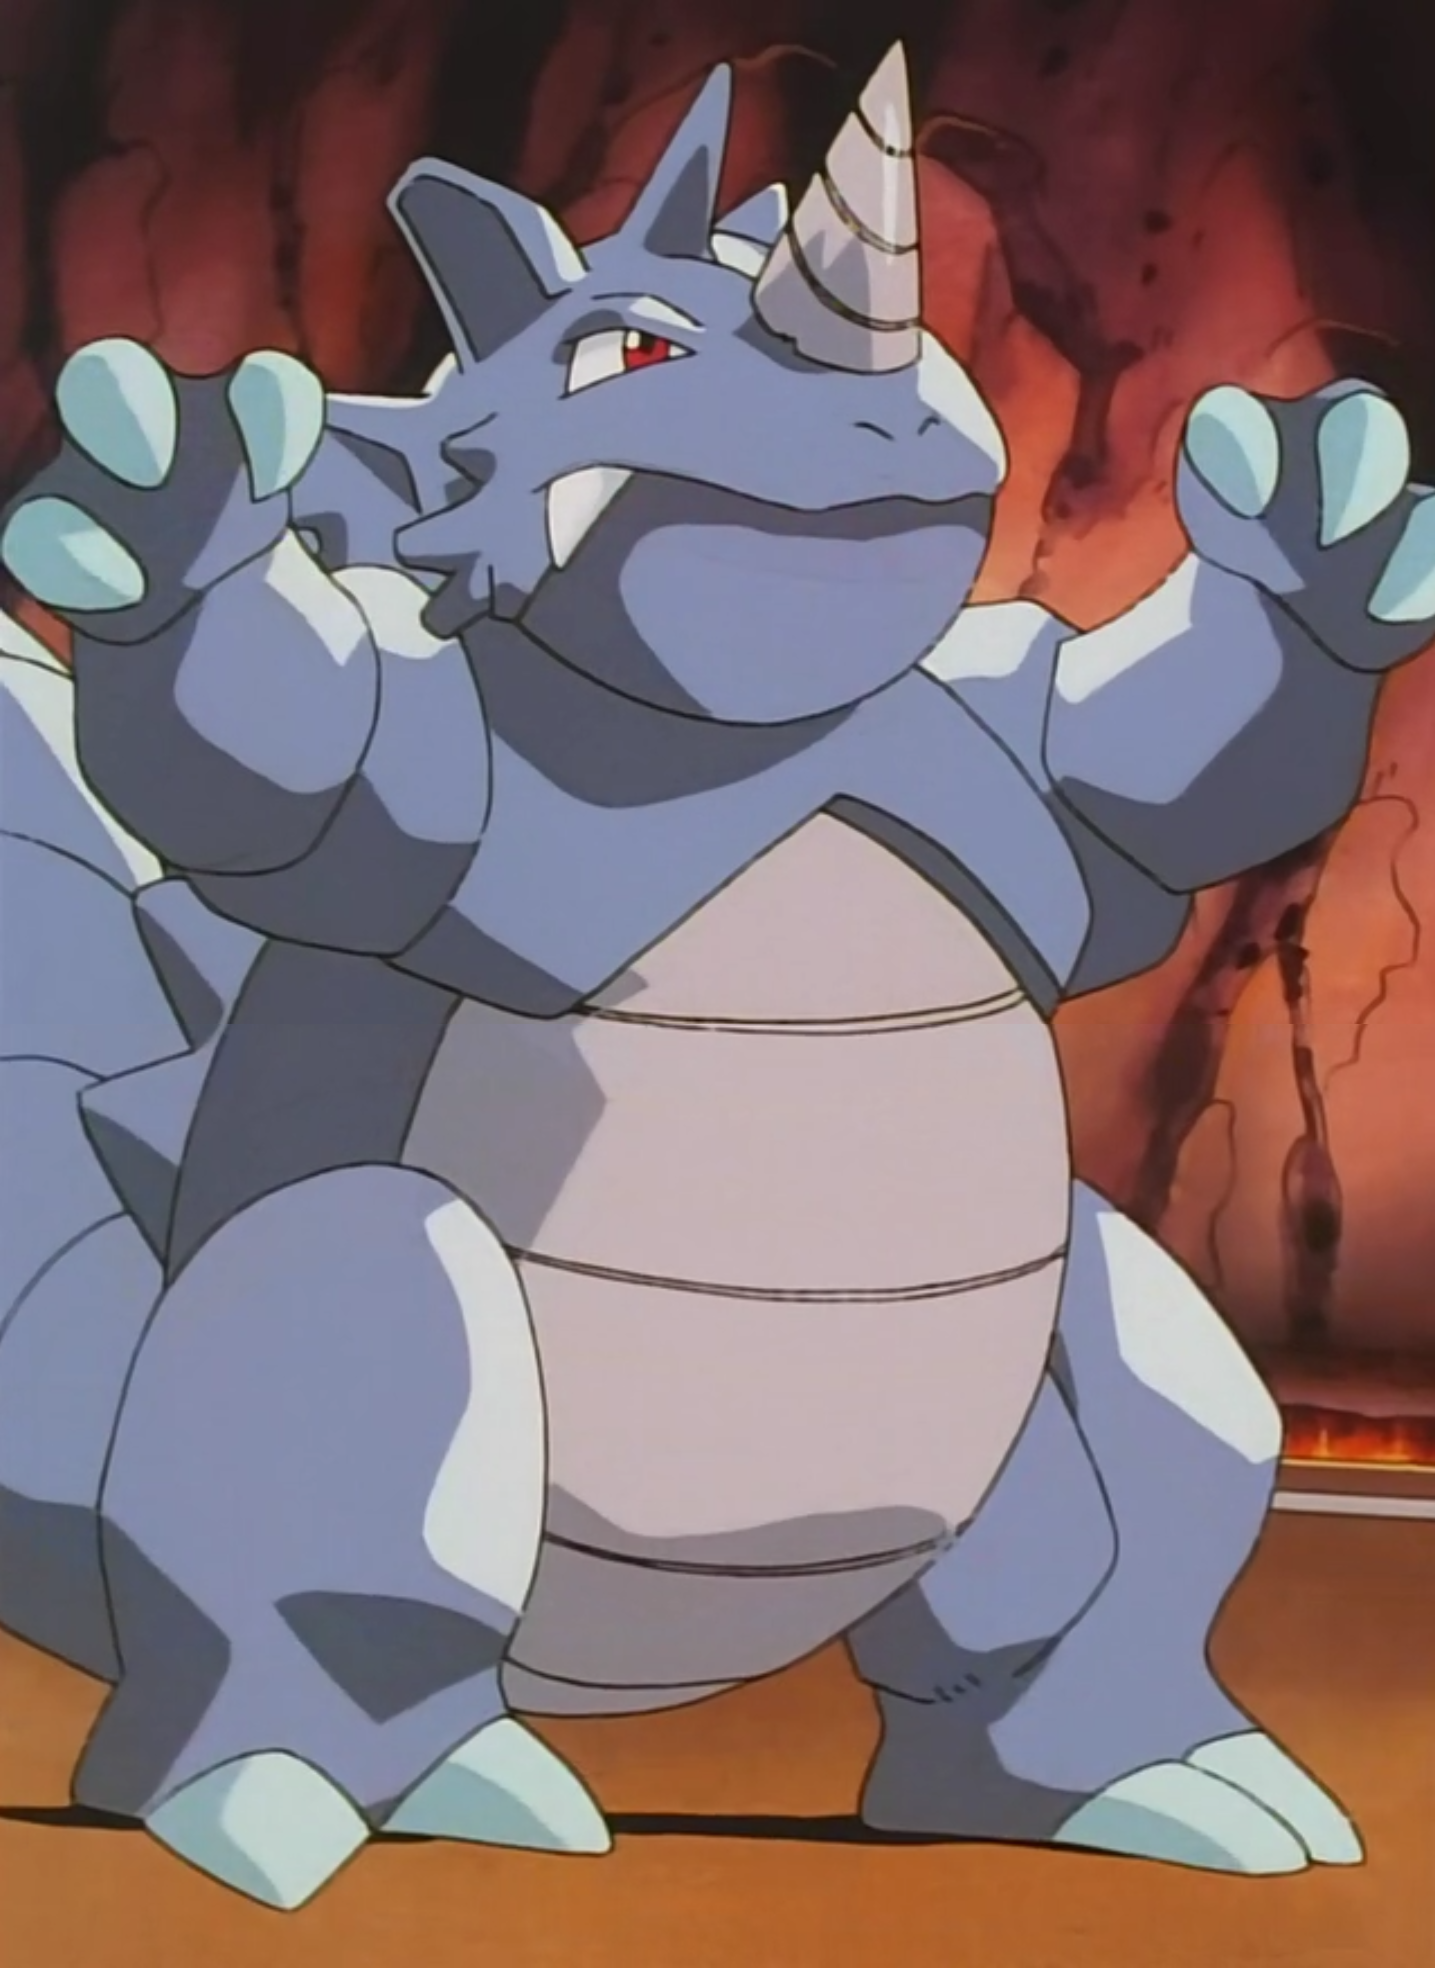 Rhydon was the second Pokémon Blaine used in his Gym Battle with Ash. It won against Ash's Charizard when it left the ring but lost to Pikachu when it shocked its horn like a lightning rod.